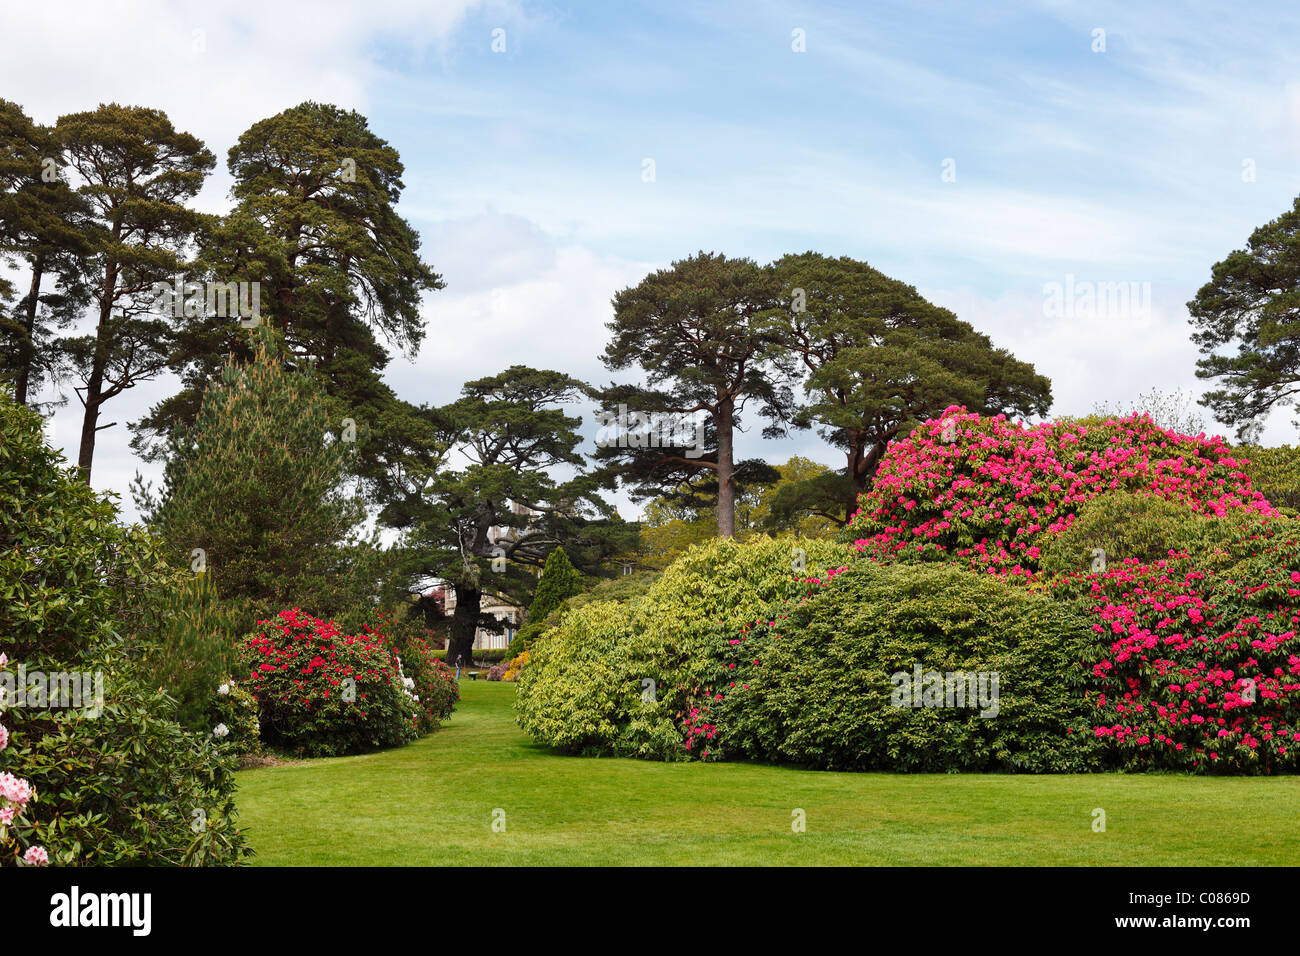 Muckross Gardens in spring, blossoming rhododendron bushes, Killarney National Park, County Kerry, Ireland, British - Stock Image